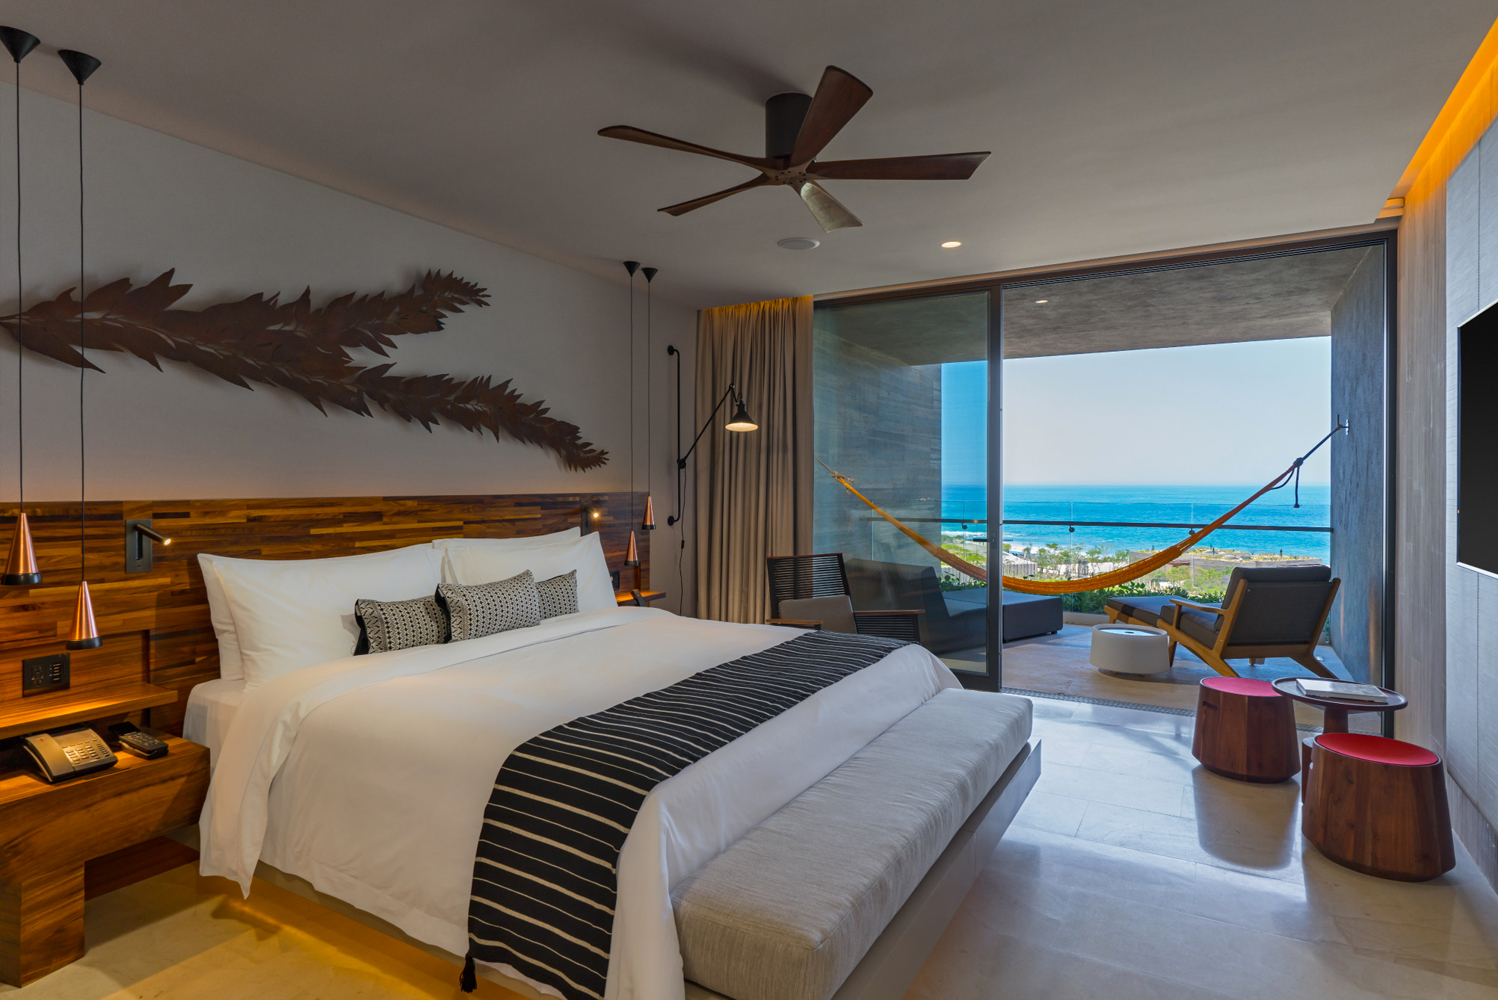 The rooms and suite at Solaz Resort have a private entrance and patio, contemporary furnishings and original art.